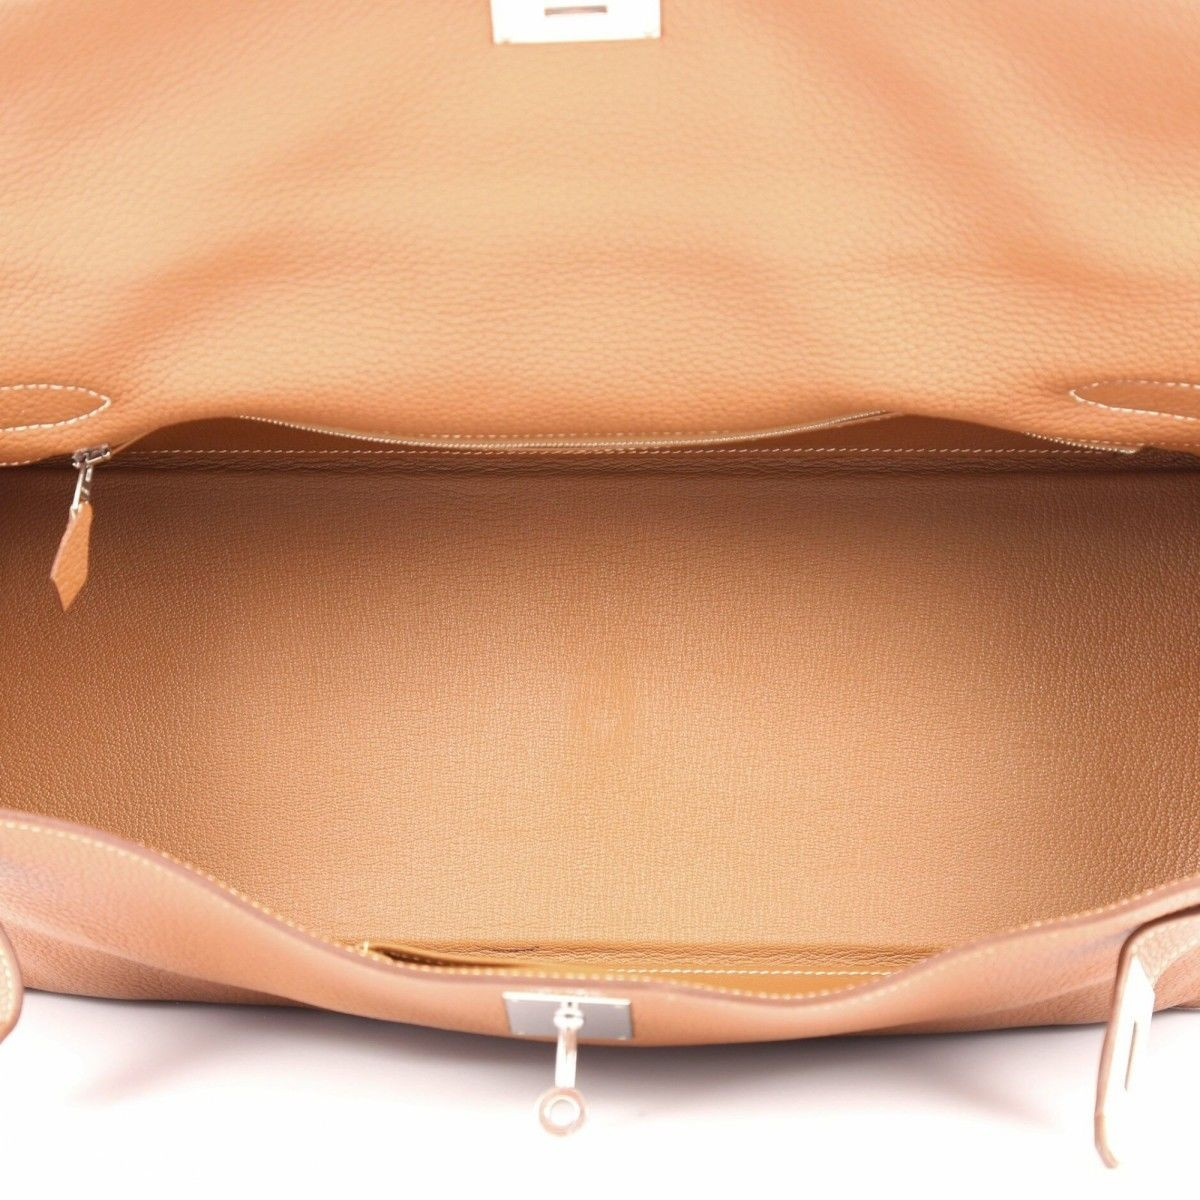 9907a50148d1 Hermès Shoulder Kelly 42 Gold Clemence PHW Clemence Leather ...